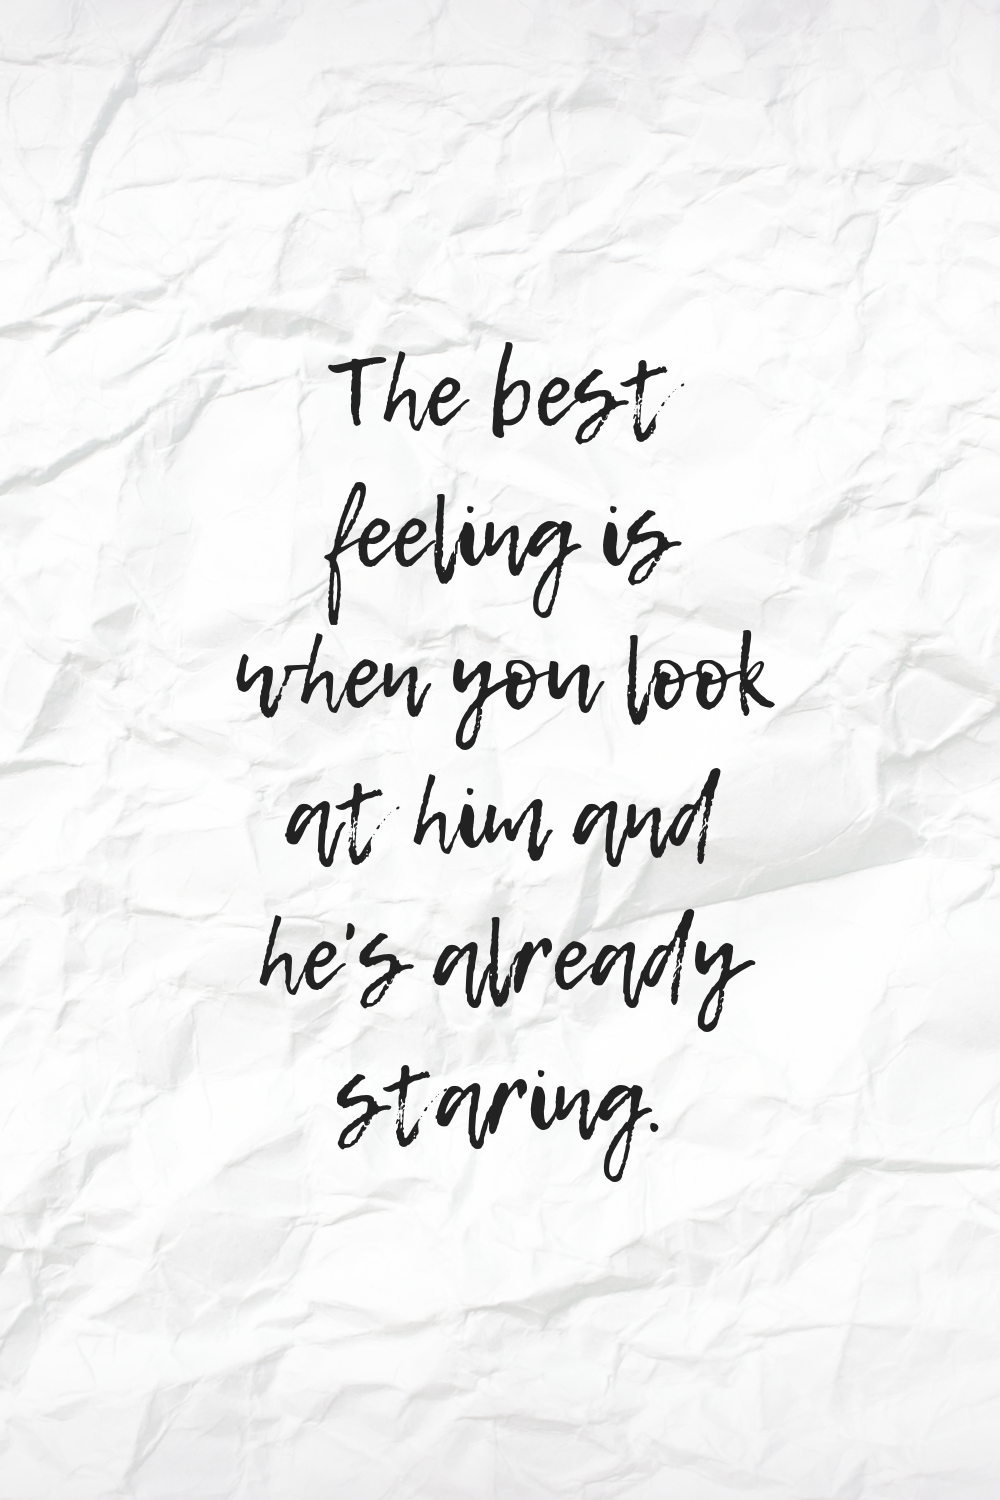 10 Super Cute Love Quotes and Sayings (with FREE Digital Downloads